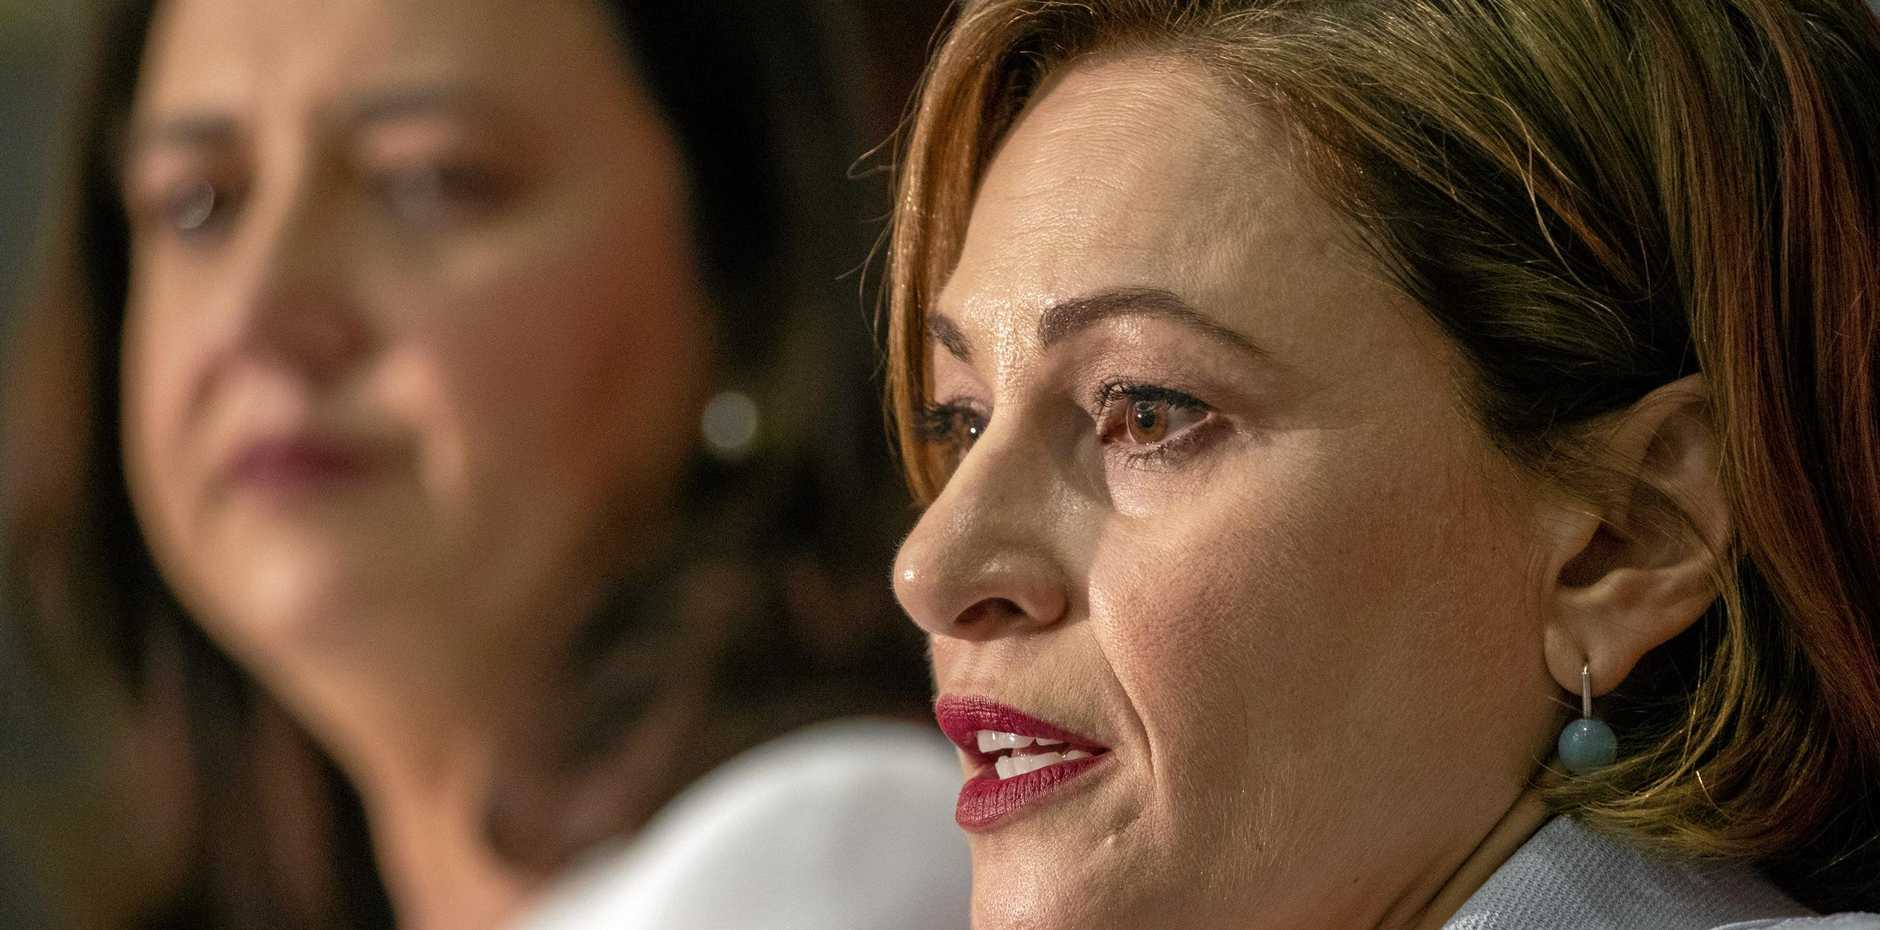 Queensland Premier Annastacia Palaszczuk and Treasurer Jackie Trad (right) speak during the state government's 2019-20 Queensland budget media briefing in Brisbane, Tuesday, June 11, 2019.